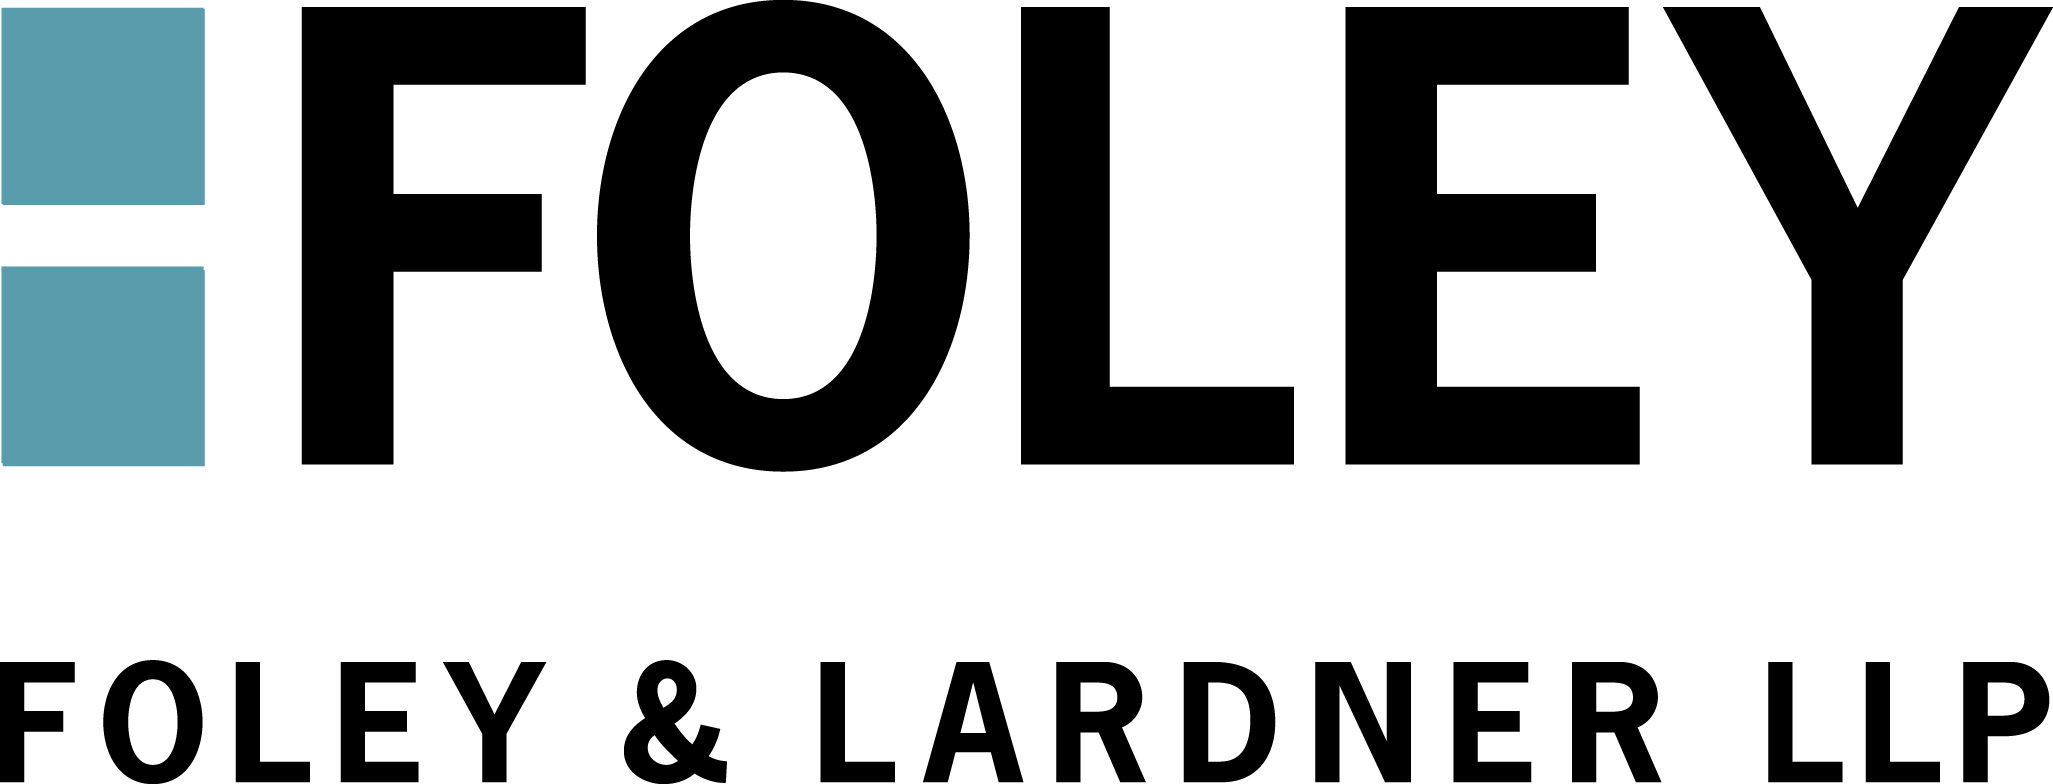 Foley and Lardner LLP